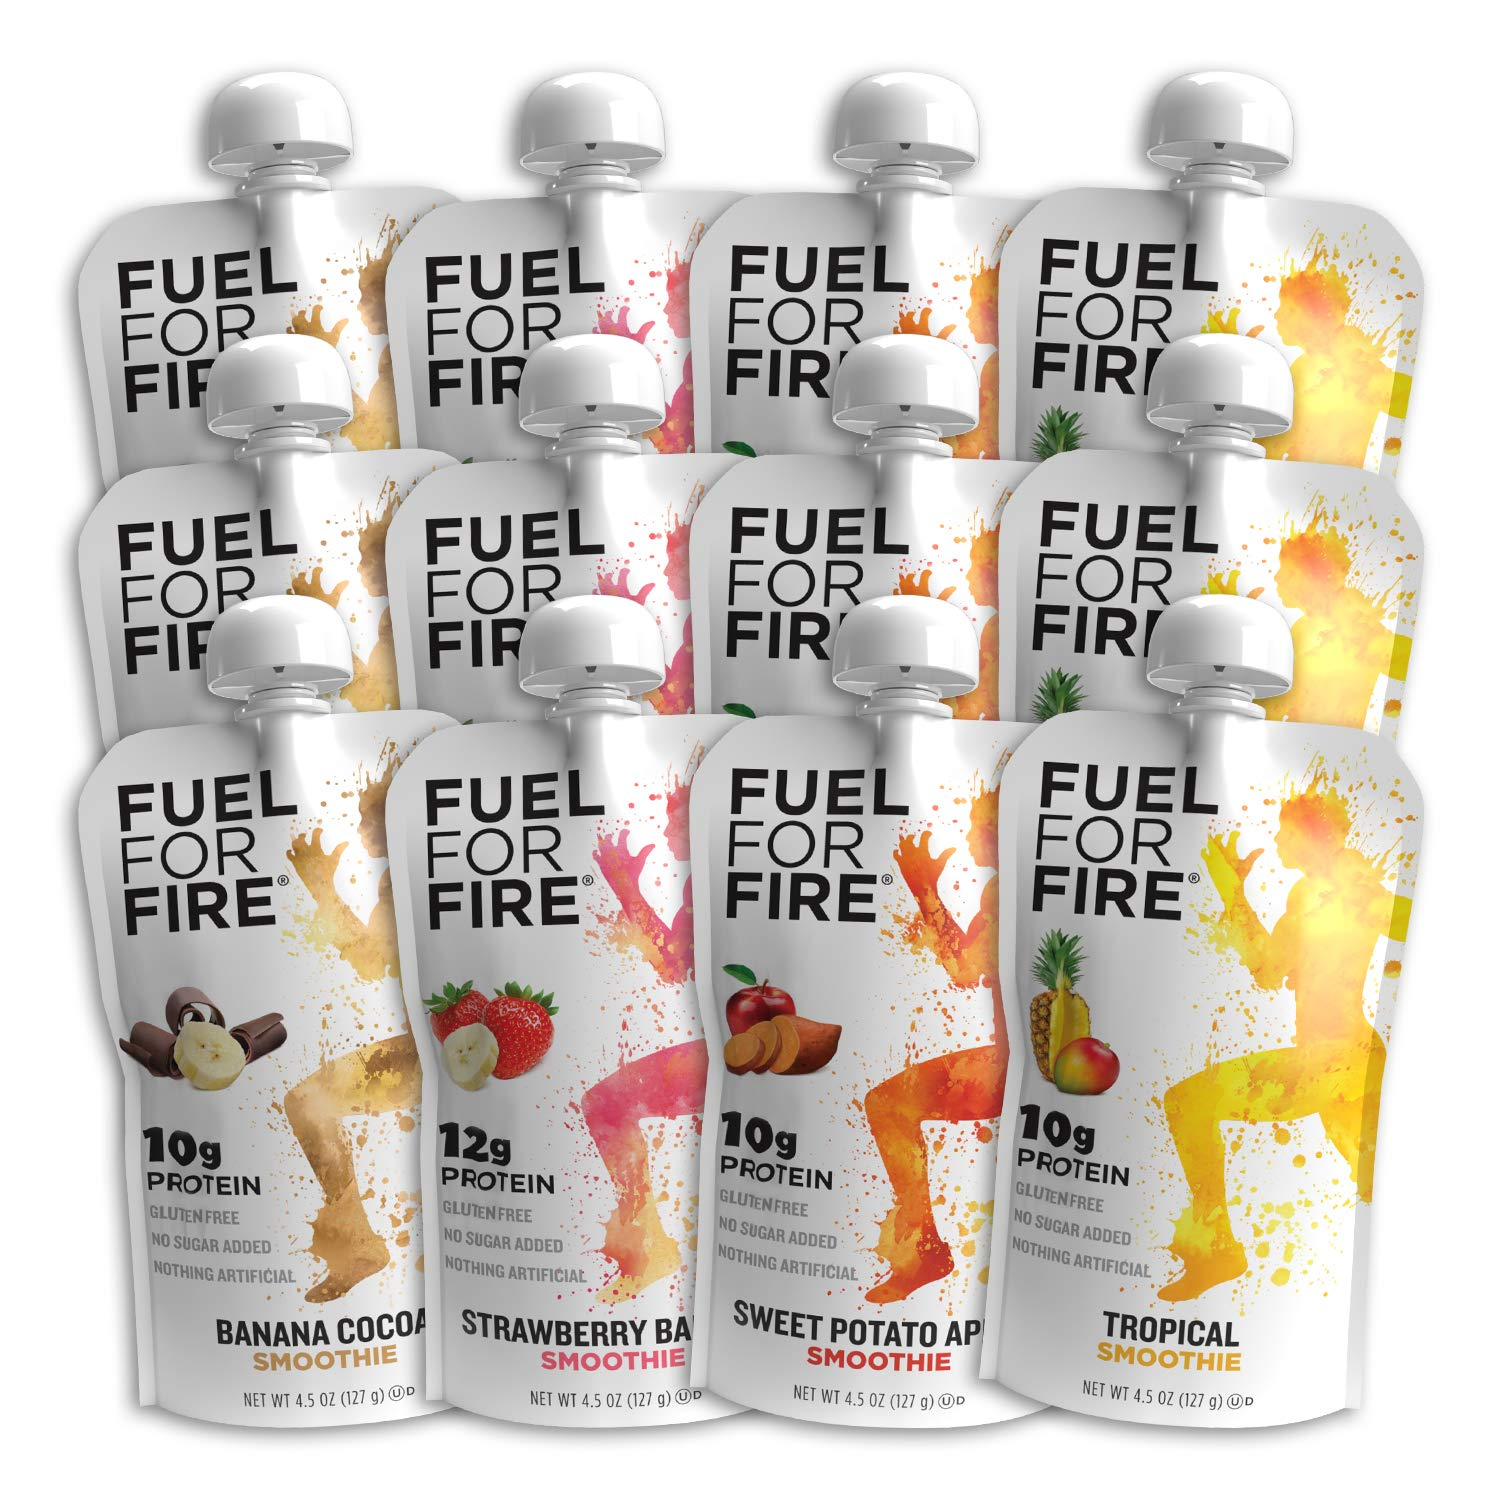 Fuel For Fire - Variety - Team Sports (12 Pack) Fruit & Protein Smoothie Squeeze Pouch   Perfect for Workouts, Kids, Snacking - Gluten Free, Soy Free, Kosher (4.5 ounce pouches)